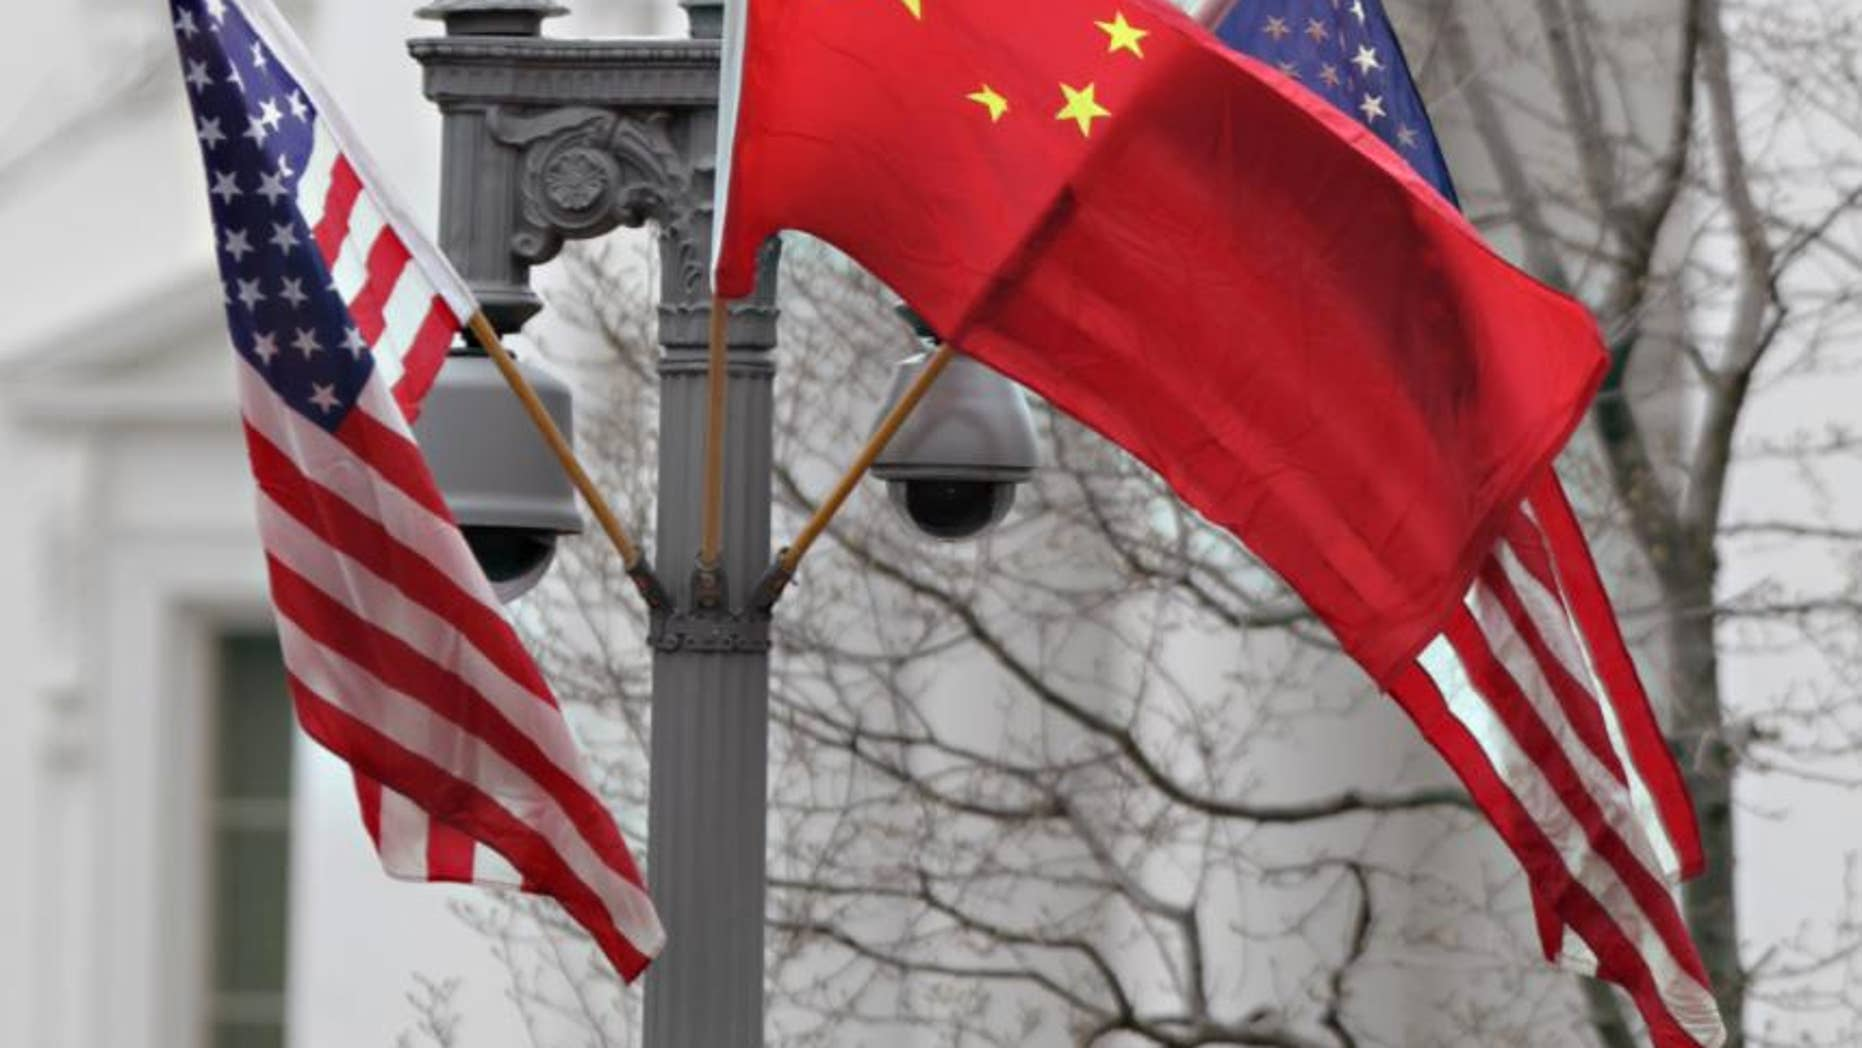 American and Chinese flags fly along Pennsylvania Avenue in front of the White House in Washington, Monday, Jan. 17, 2011. On Wednesday, Chinese President Hu Jintao arrives for a state visit. (AP Photo/Carolyn Kaster)